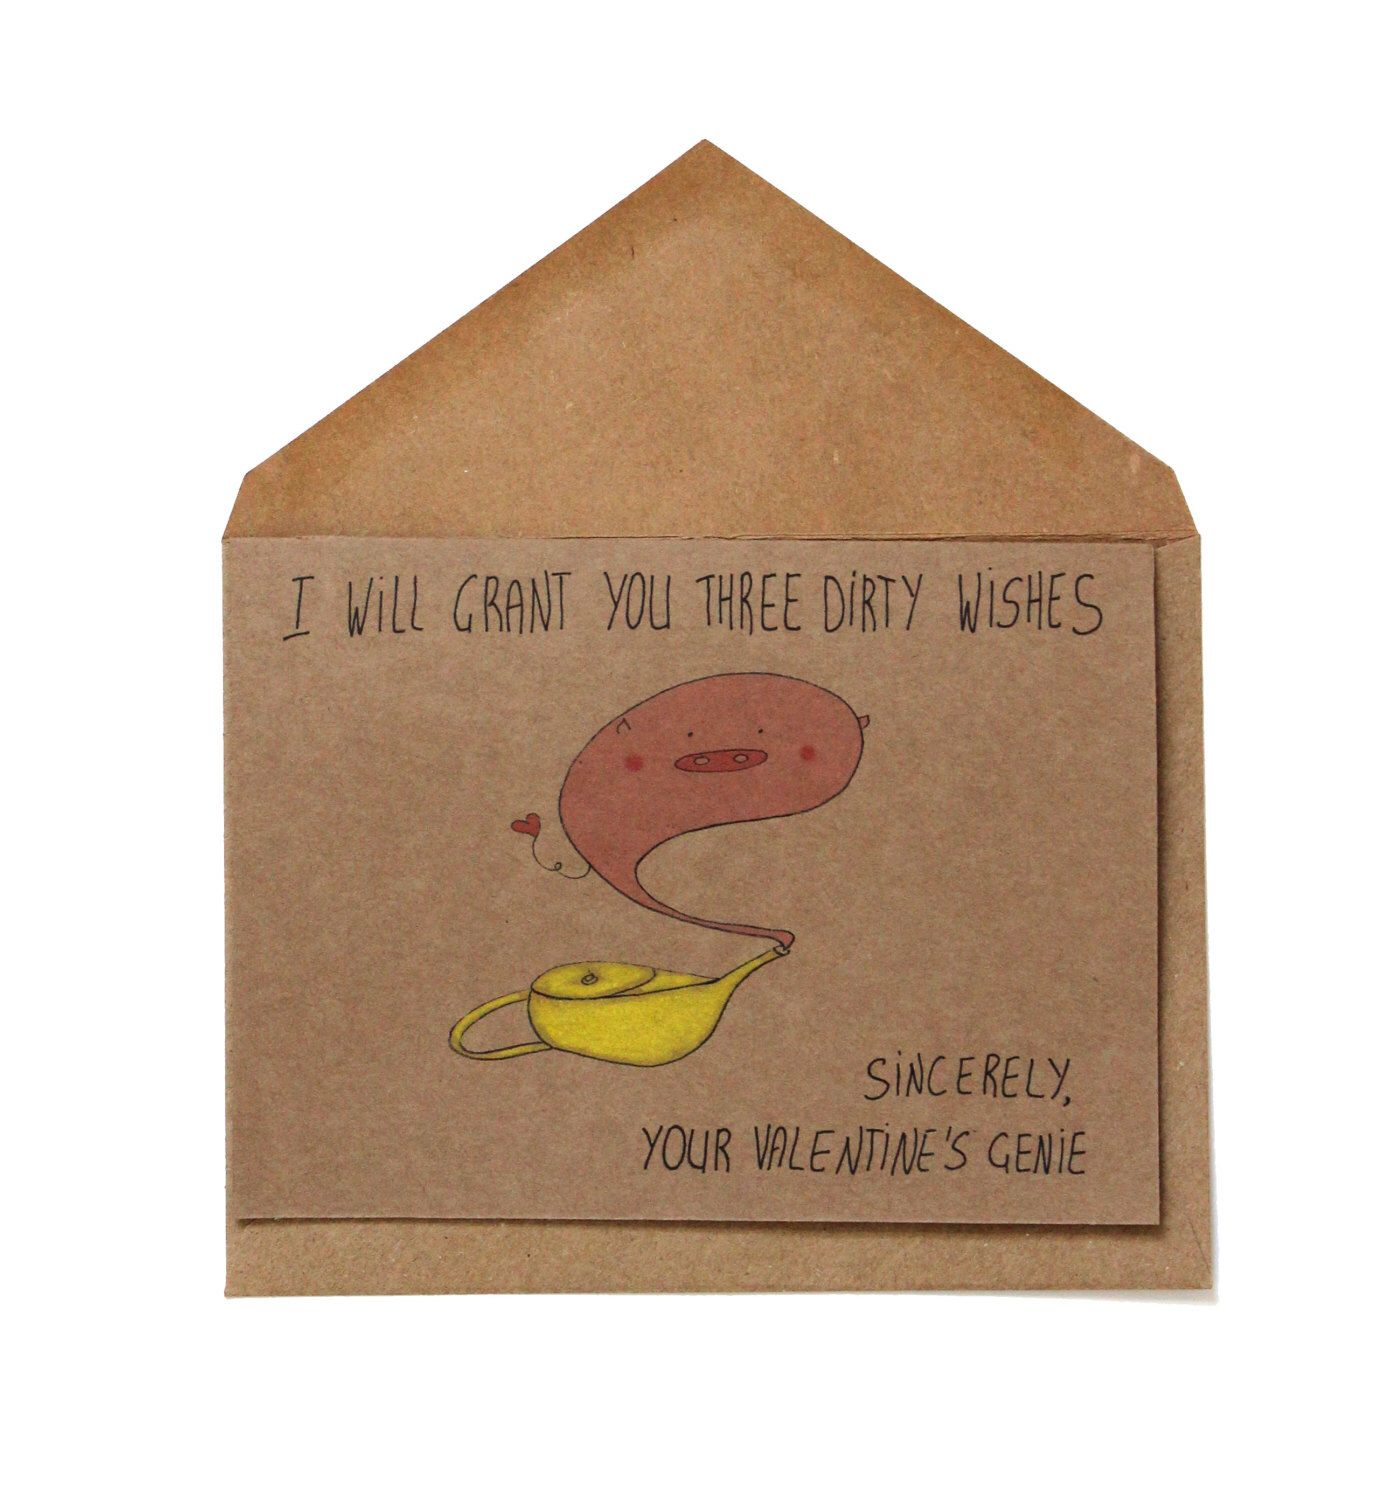 Sexy Valentines Card Dirty Valentine S Card Him Naughty Valentines